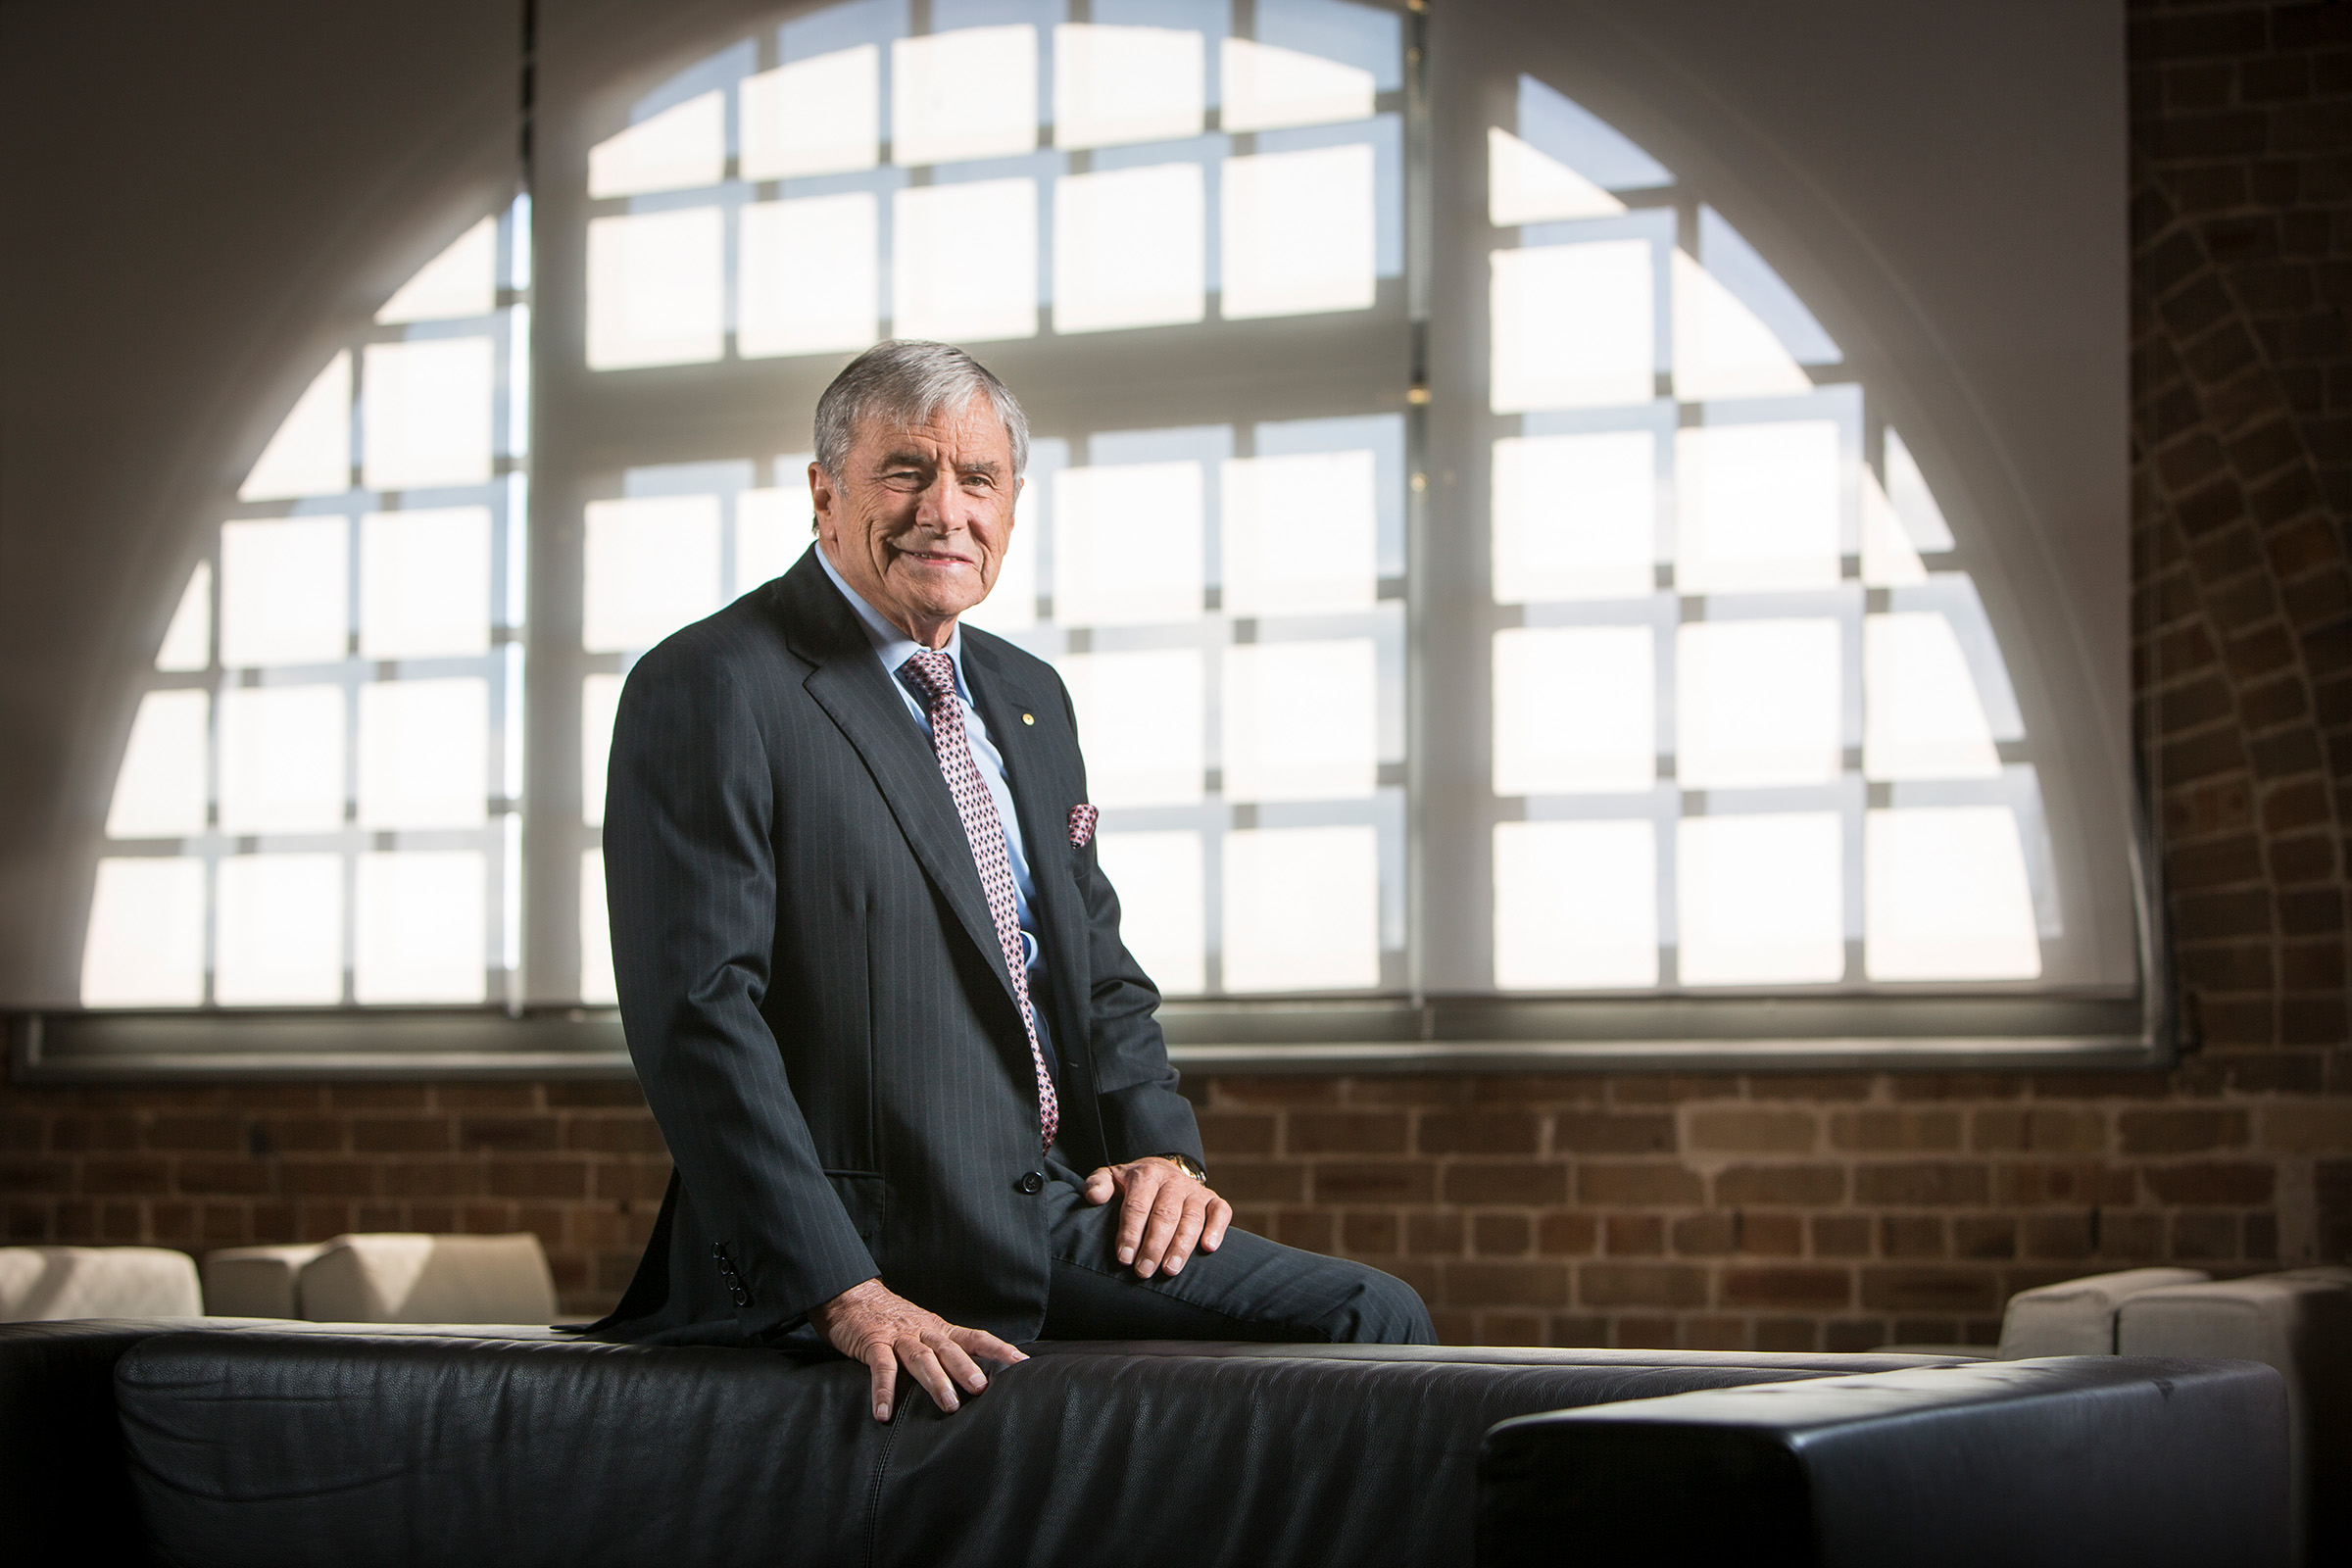 Corporate editorial photography Kerry Stokes smiling seated on the back of a couch in front of arched window